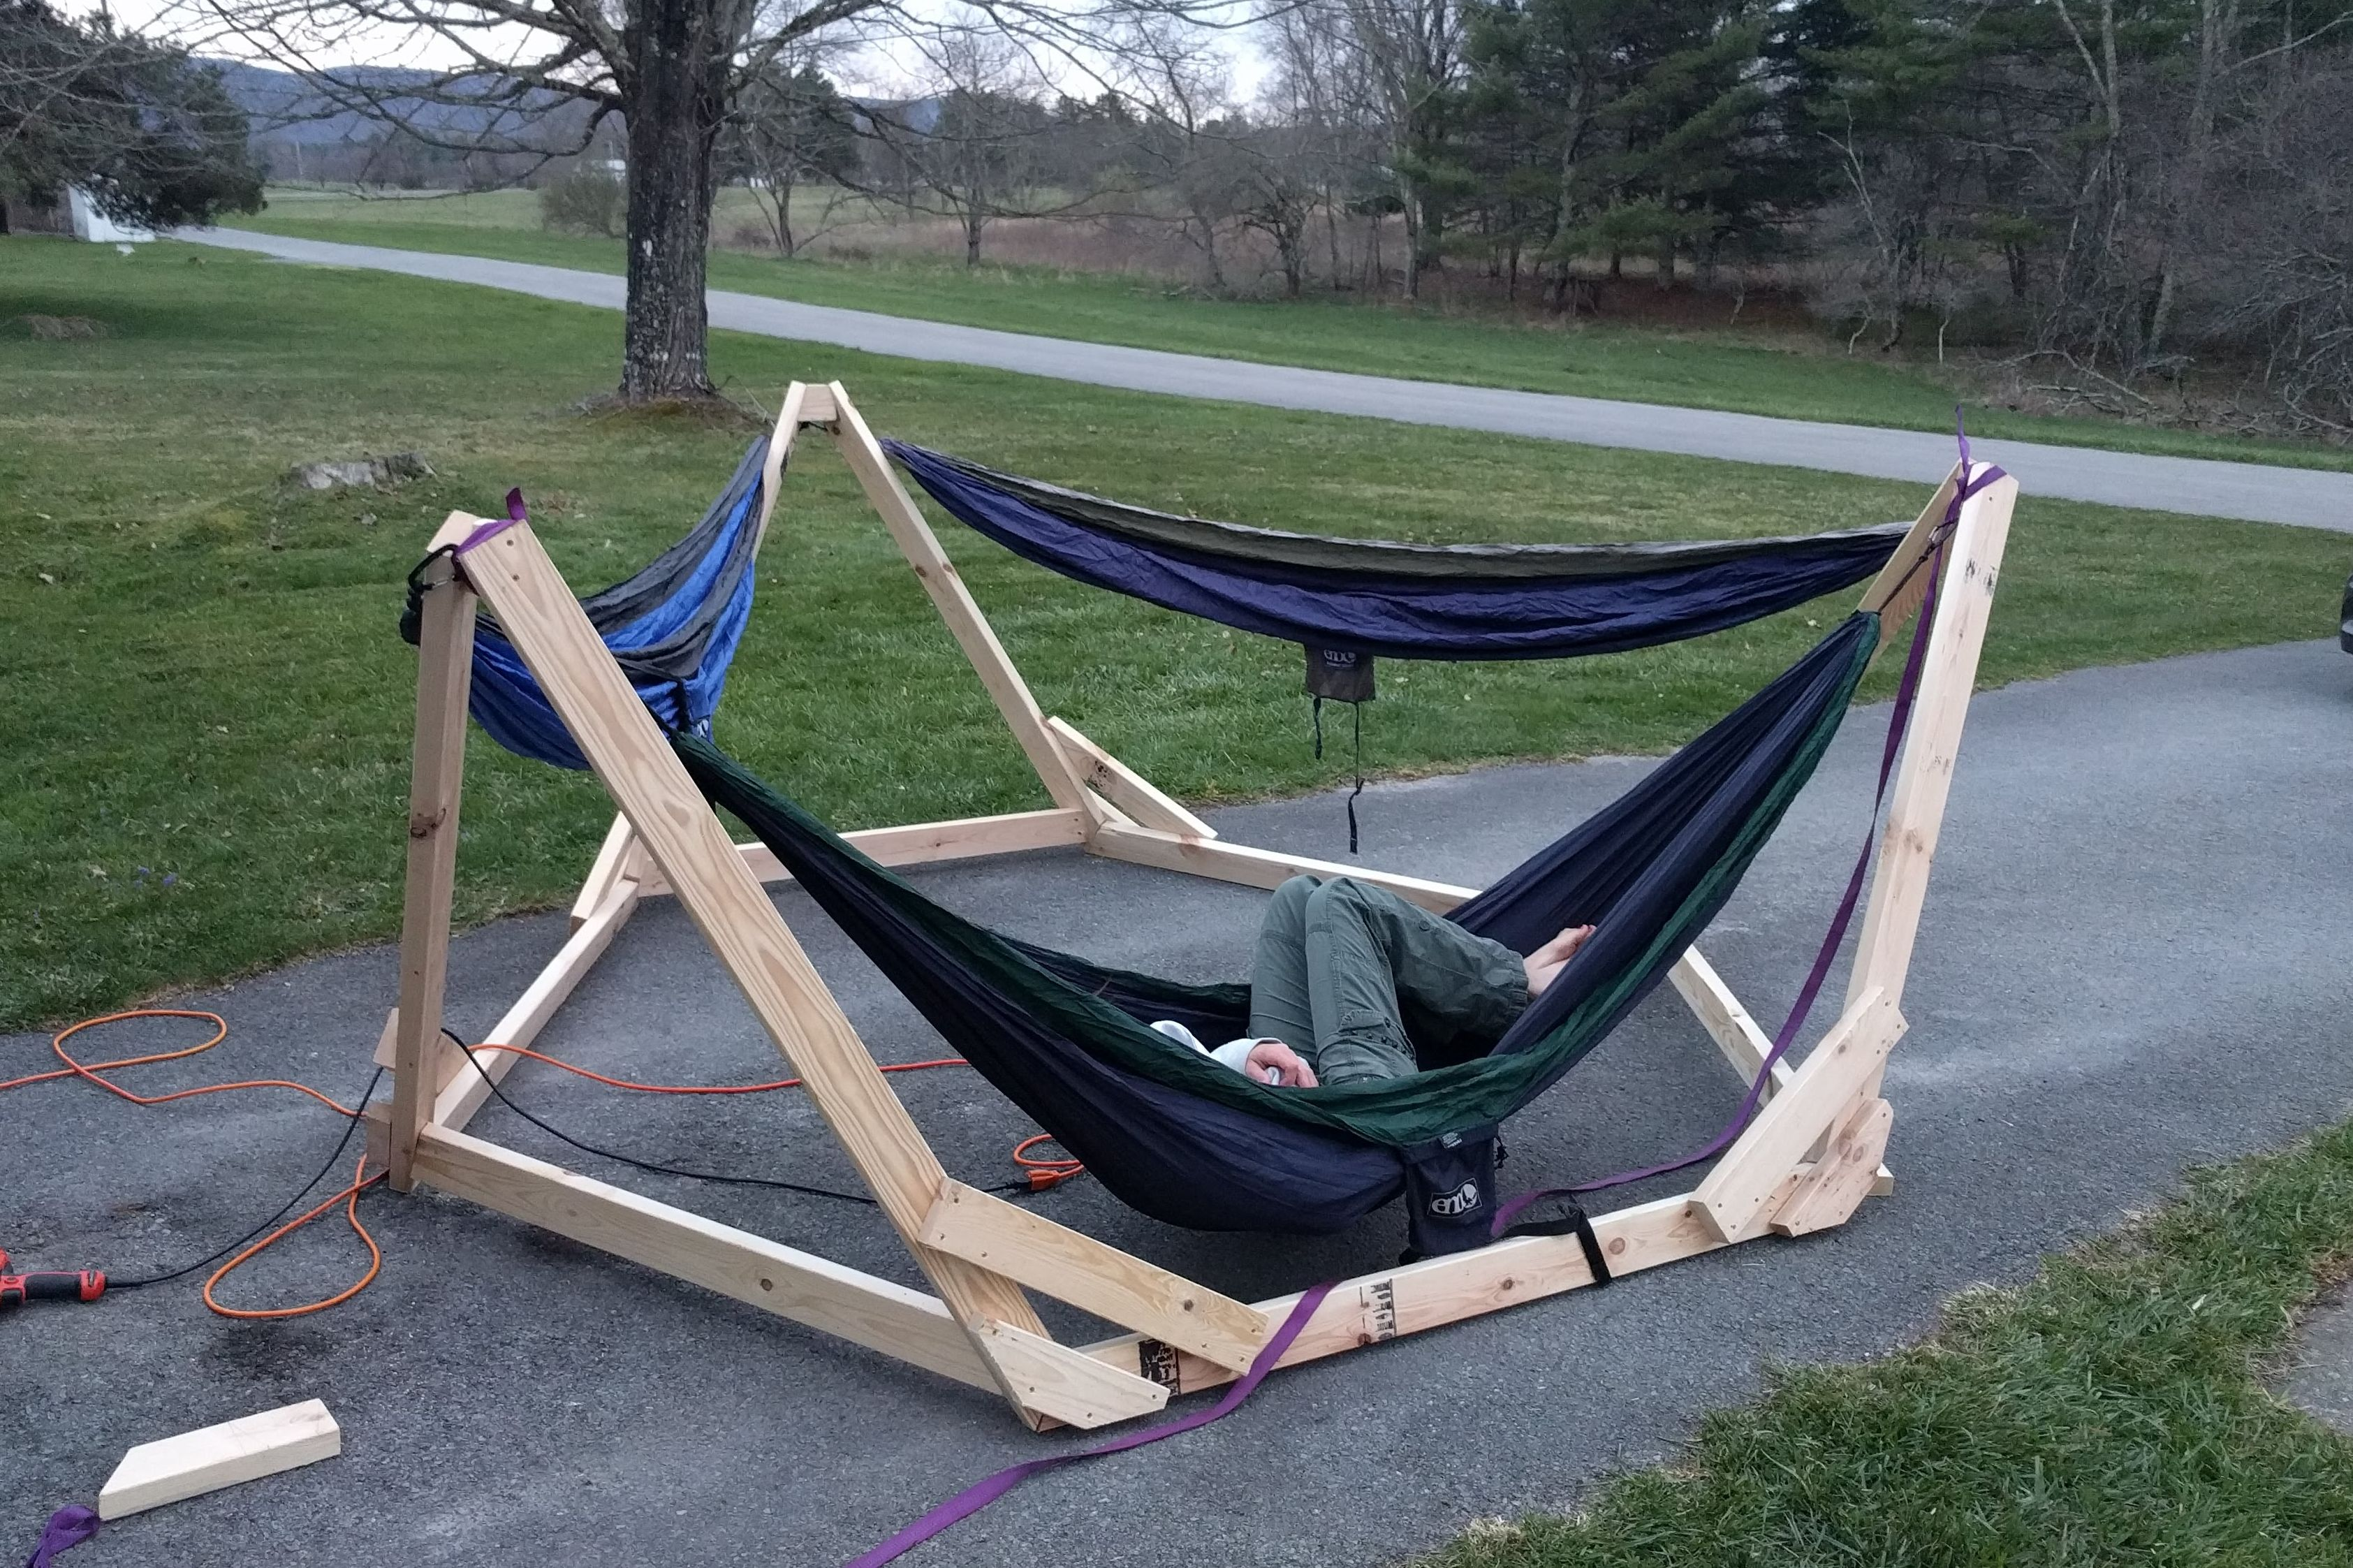 Picture of the completed hammock stand